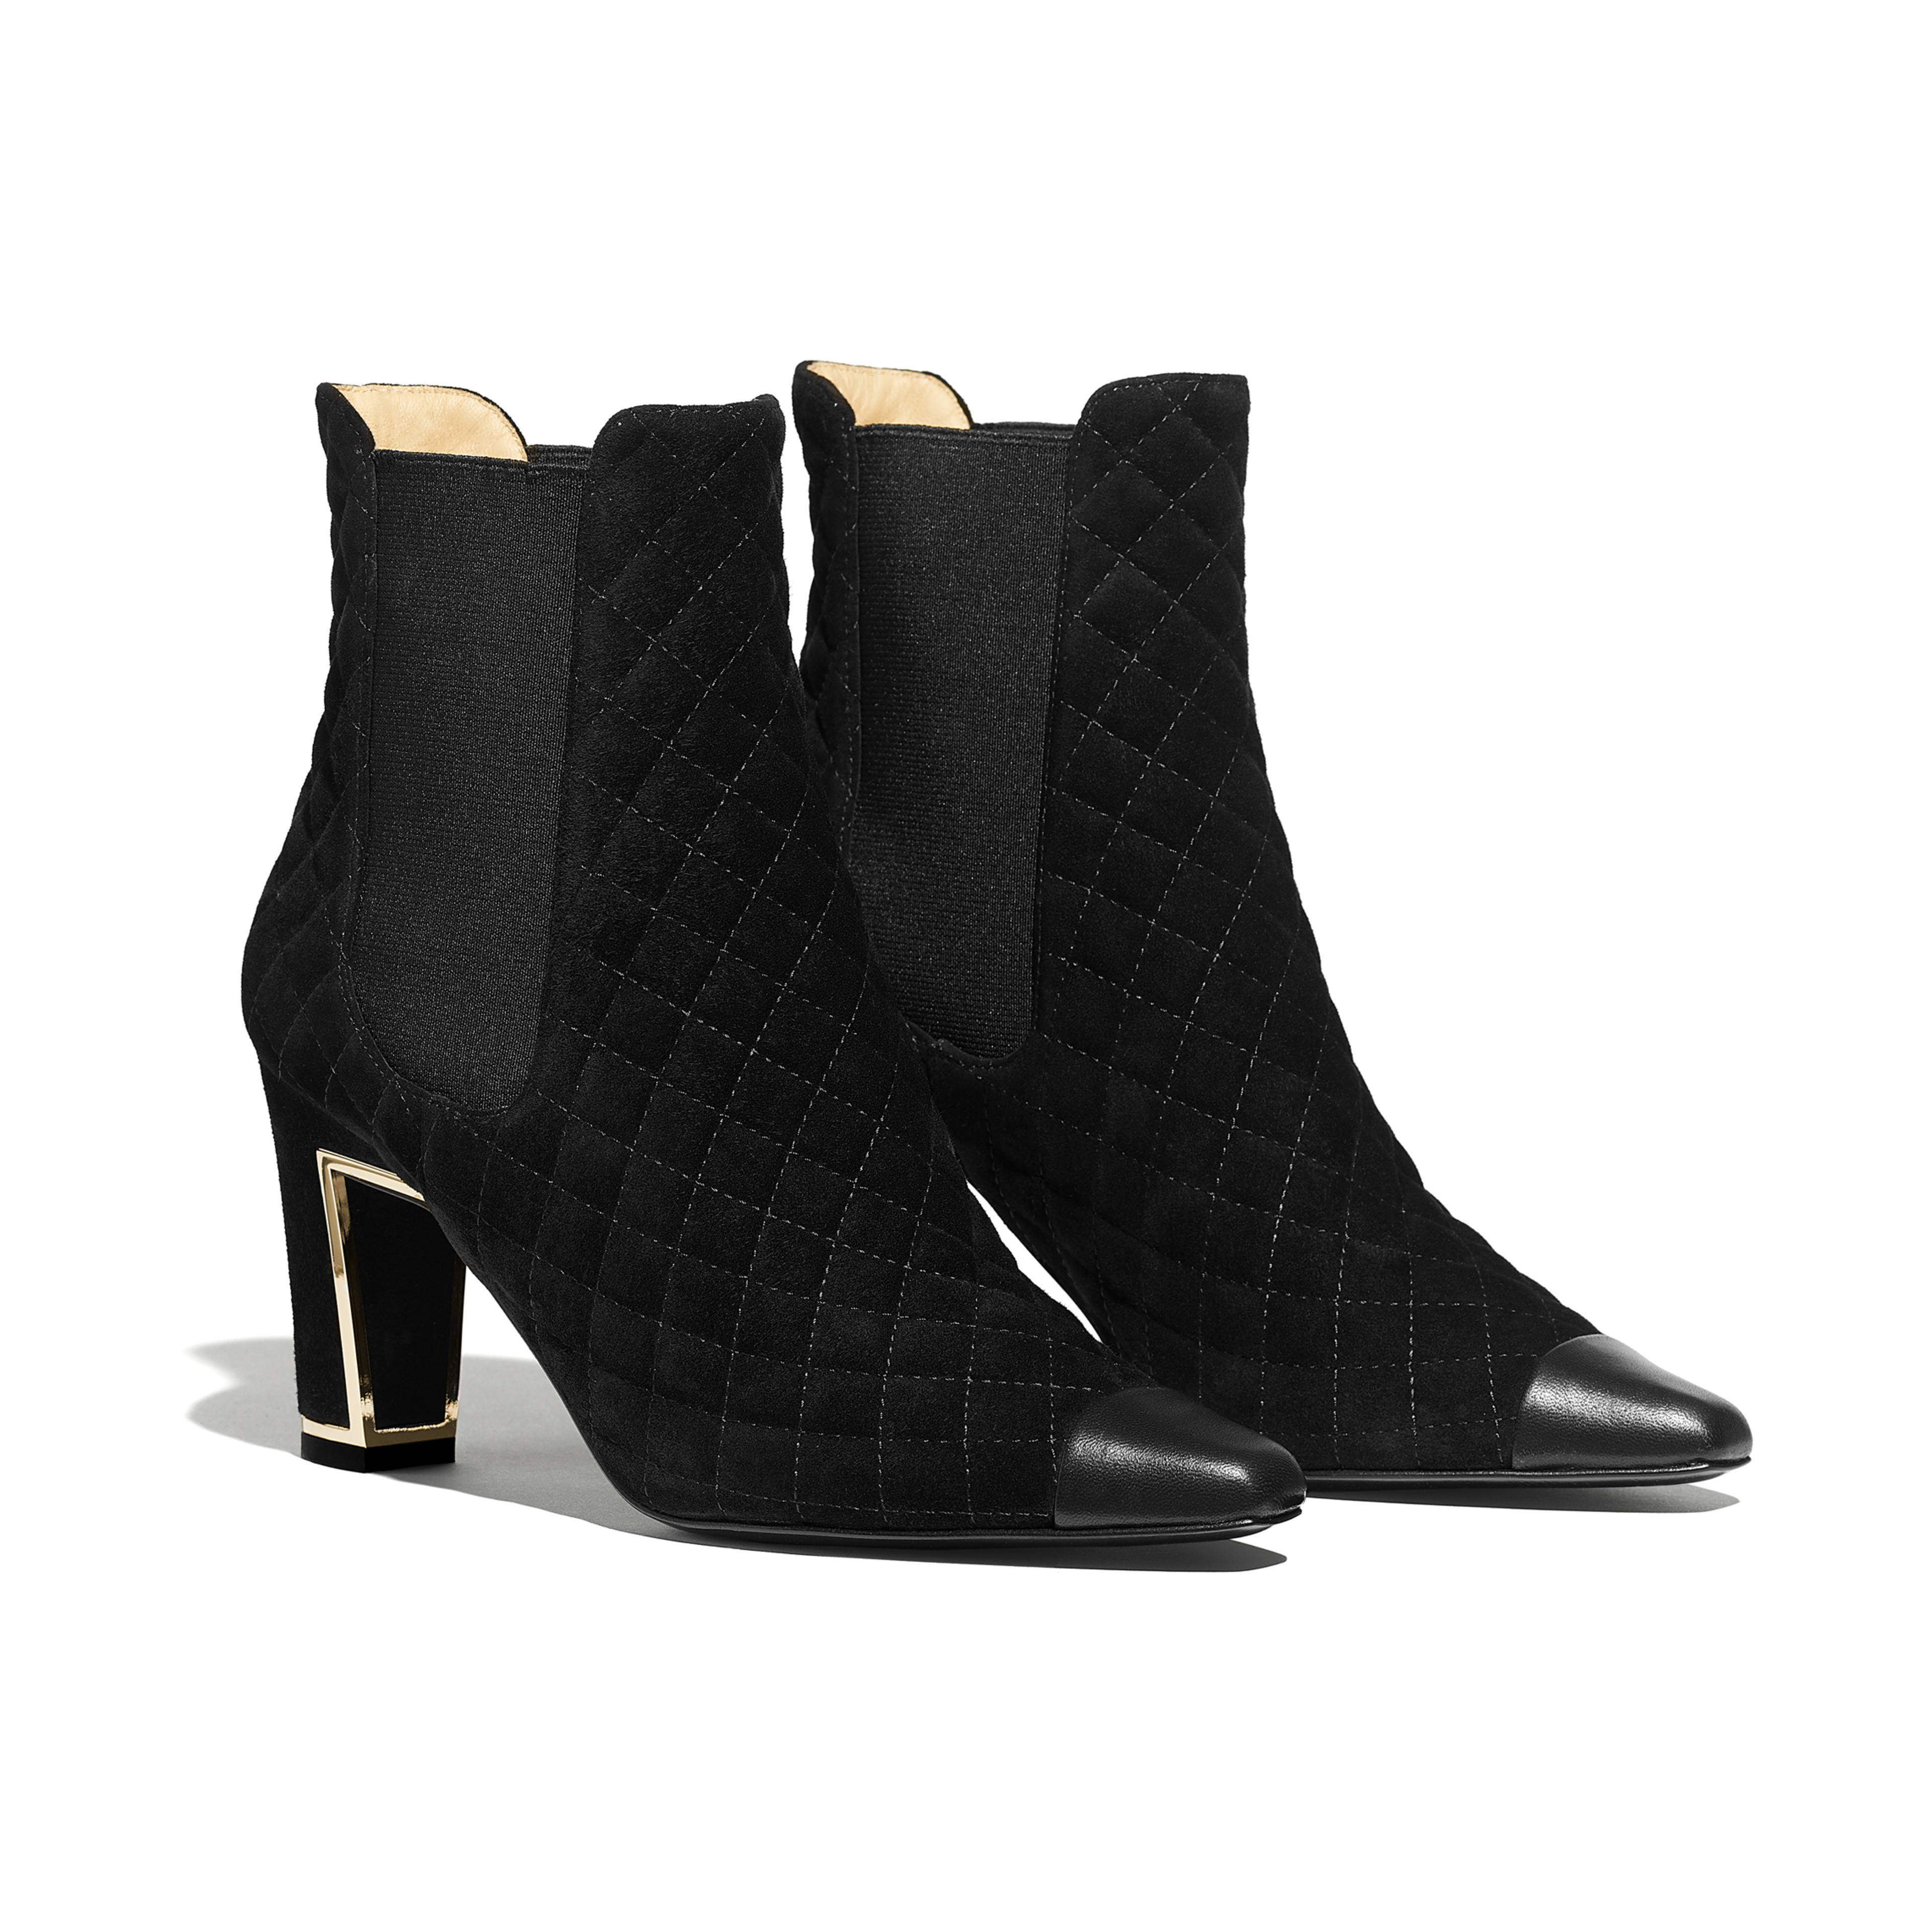 Ankle Boots - Black - Suede Calfskin & Lambskin - Alternative view - see full sized version